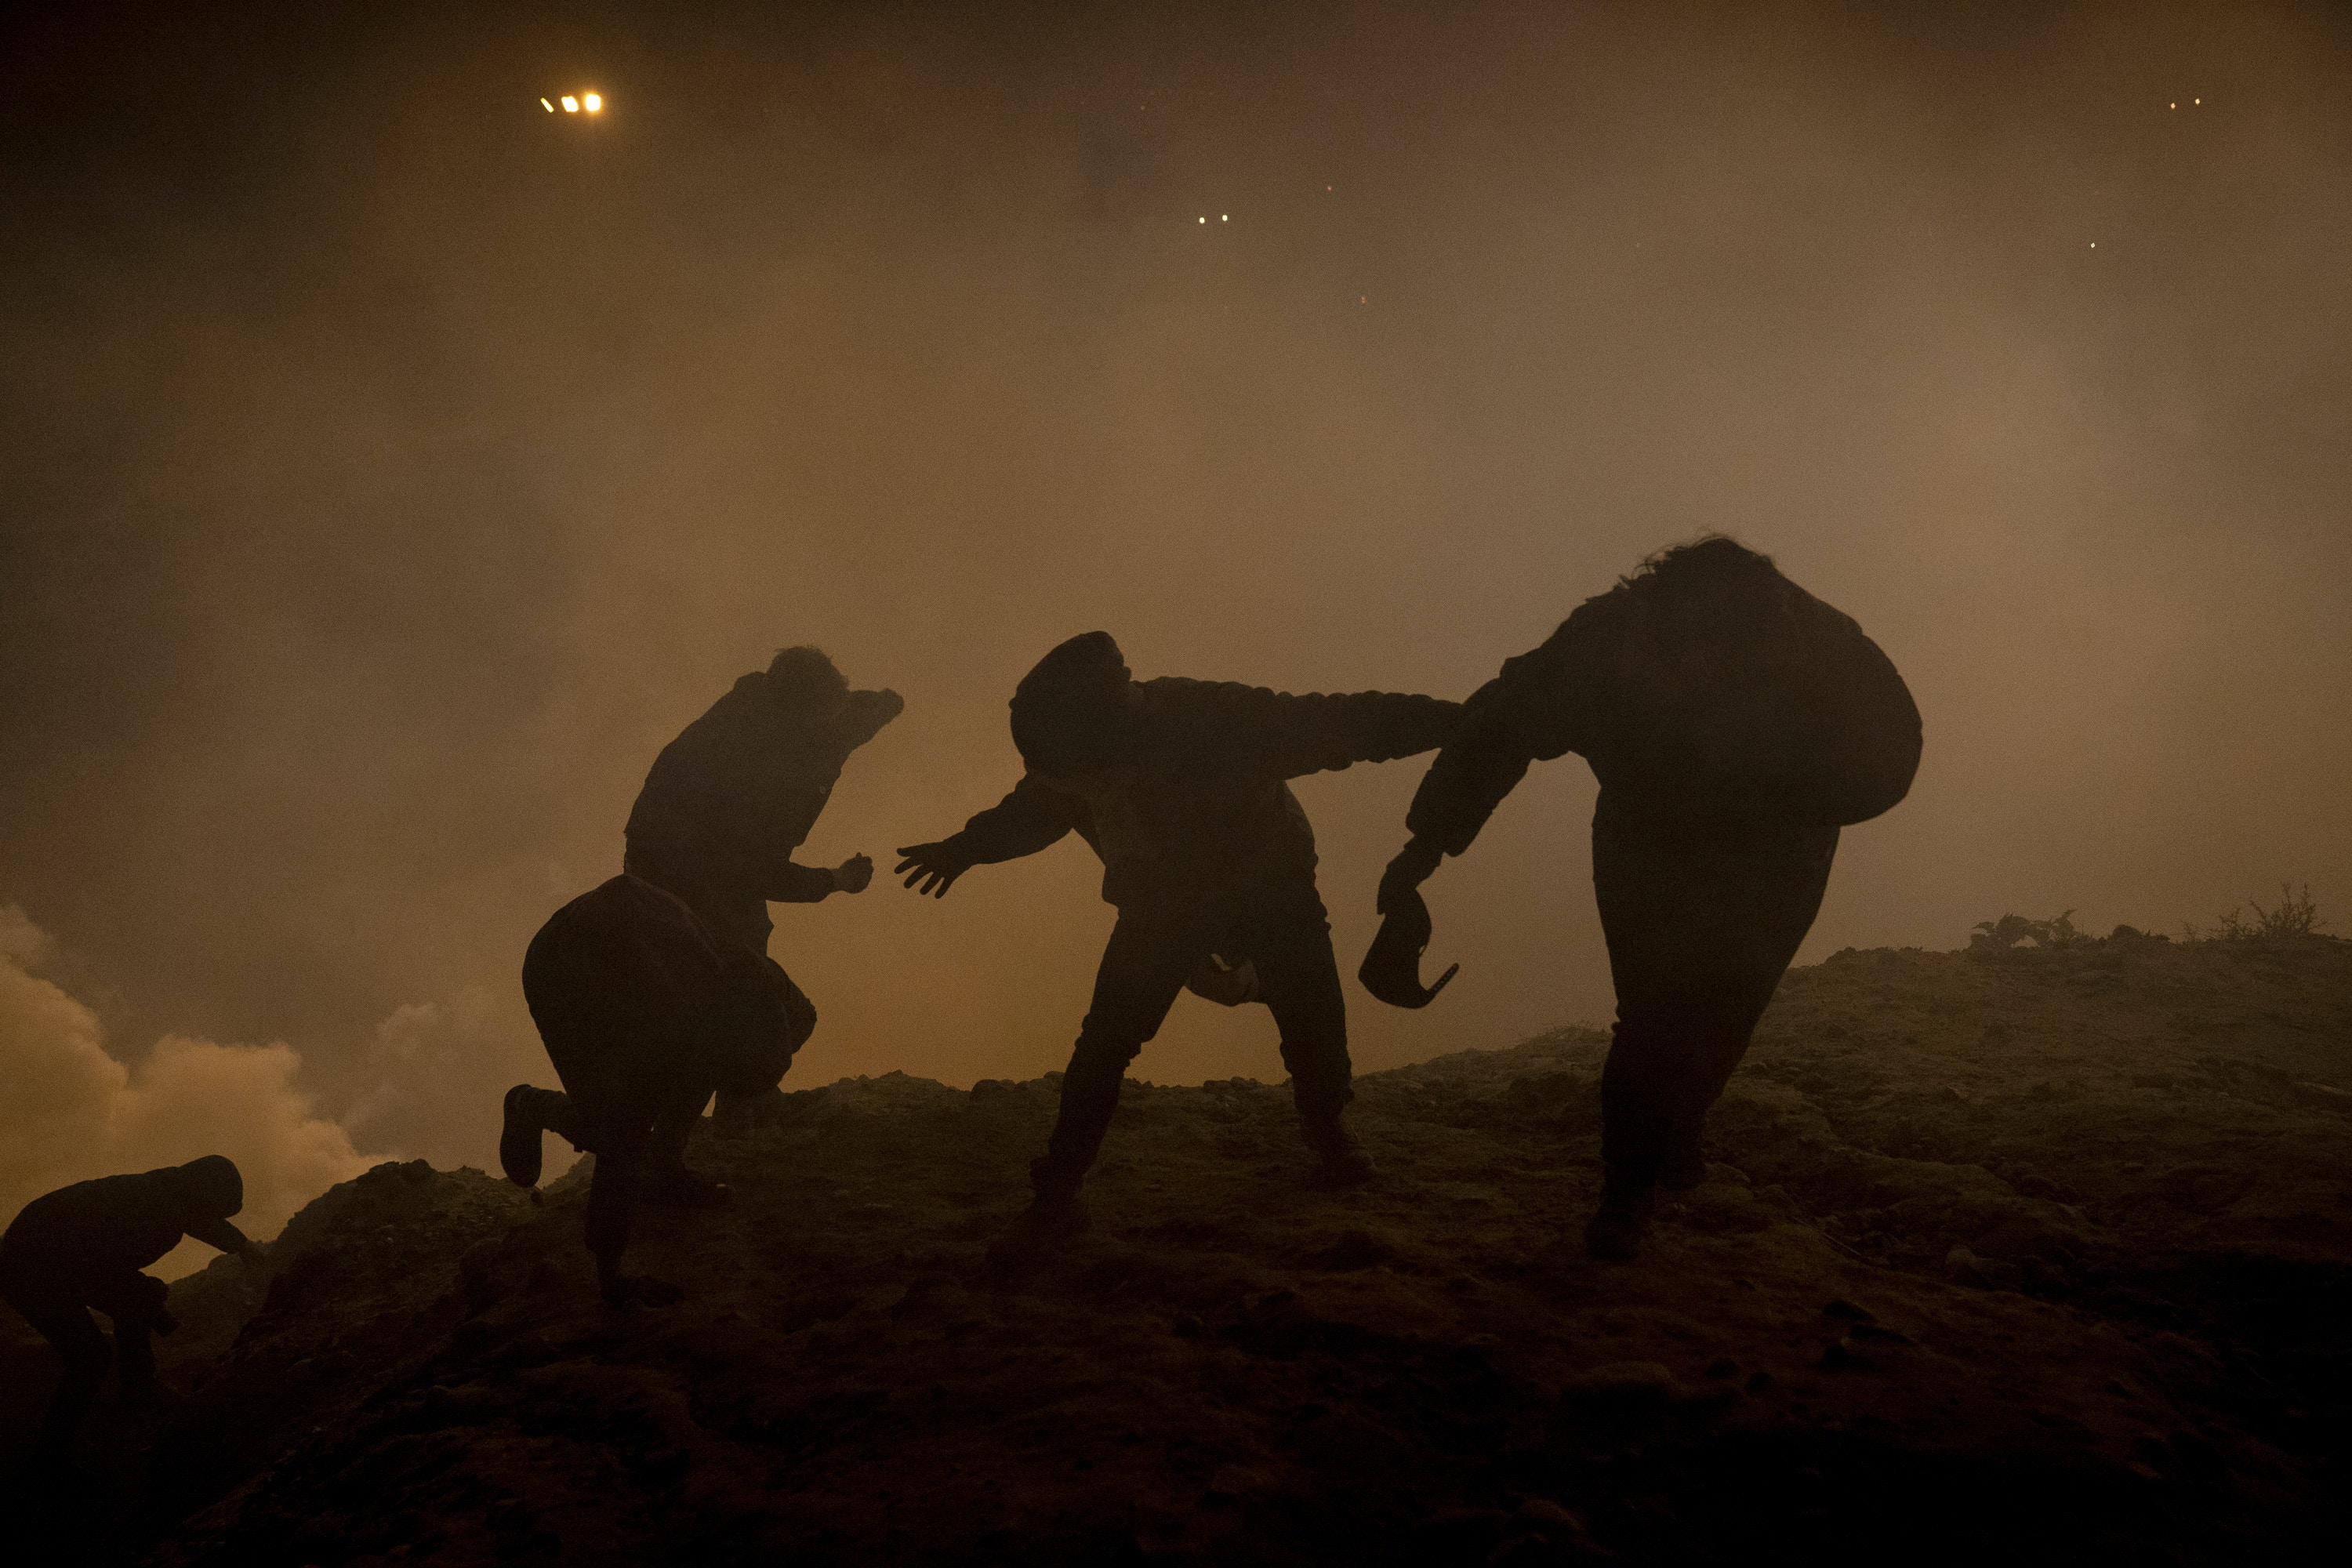 Migrants, journalists and U.S. activists run from tear gas on January 1, 2019 after US authorities fired tear gas over the border wall in Tijuana, Mexico. A group of approximately 150 migrants attempted to cross the border but their attempt was thwarted when CBP discovered where they were hiding and used several crowd control techniques to disperse the group.Photo by Kitra Cahana / MAPS